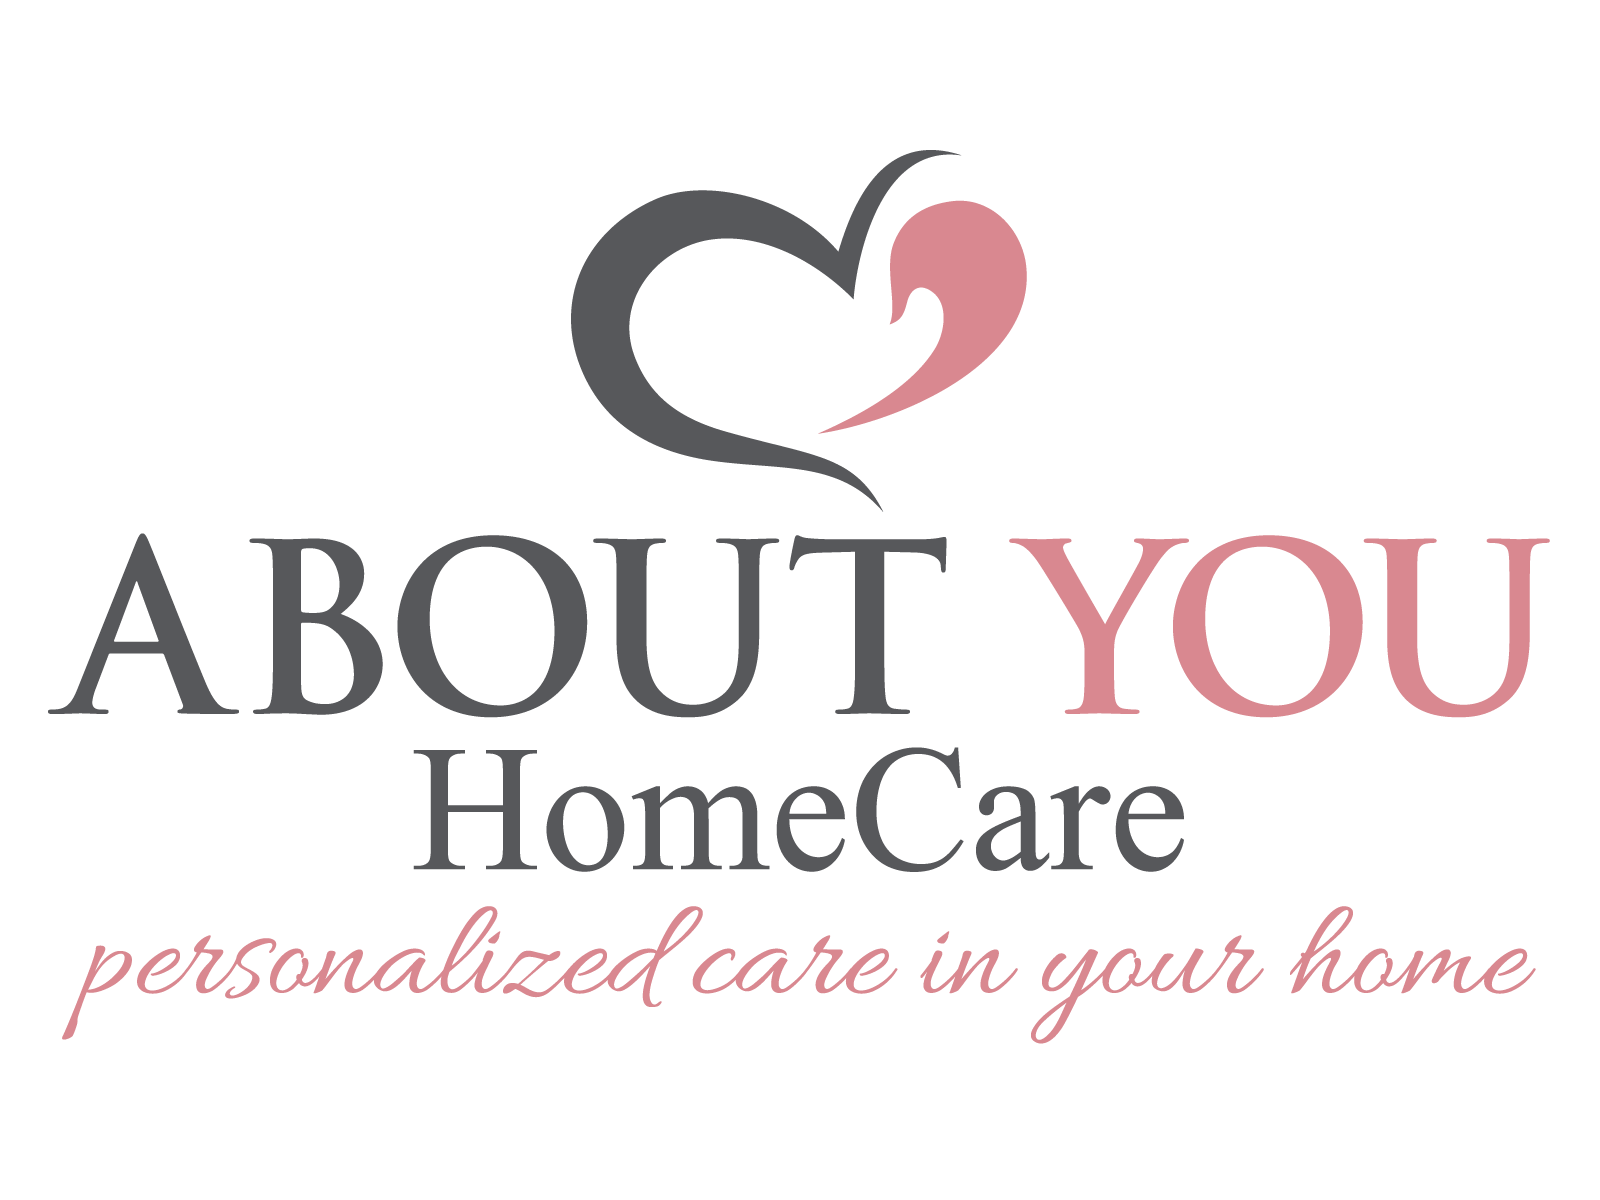 About You Home Care